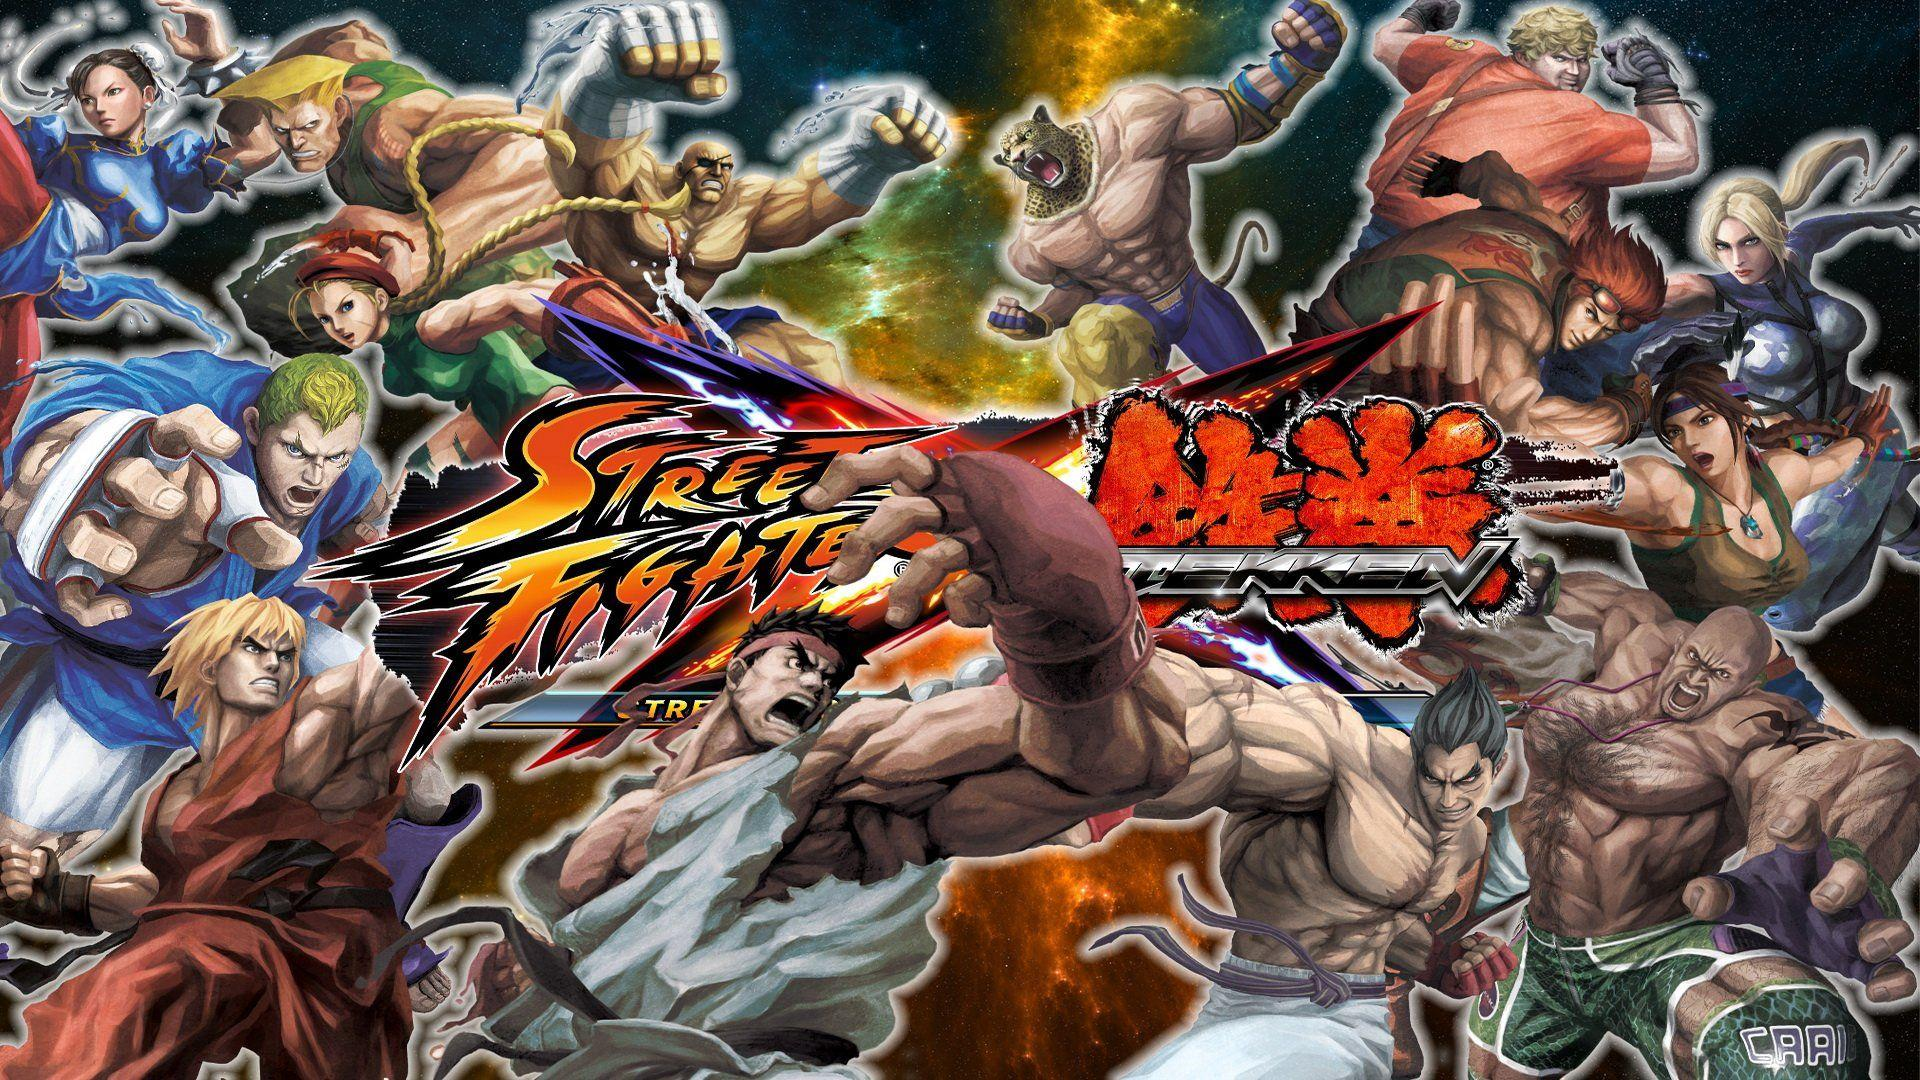 Street Fighter X Tekken Wallpapers Wallpaper Cave